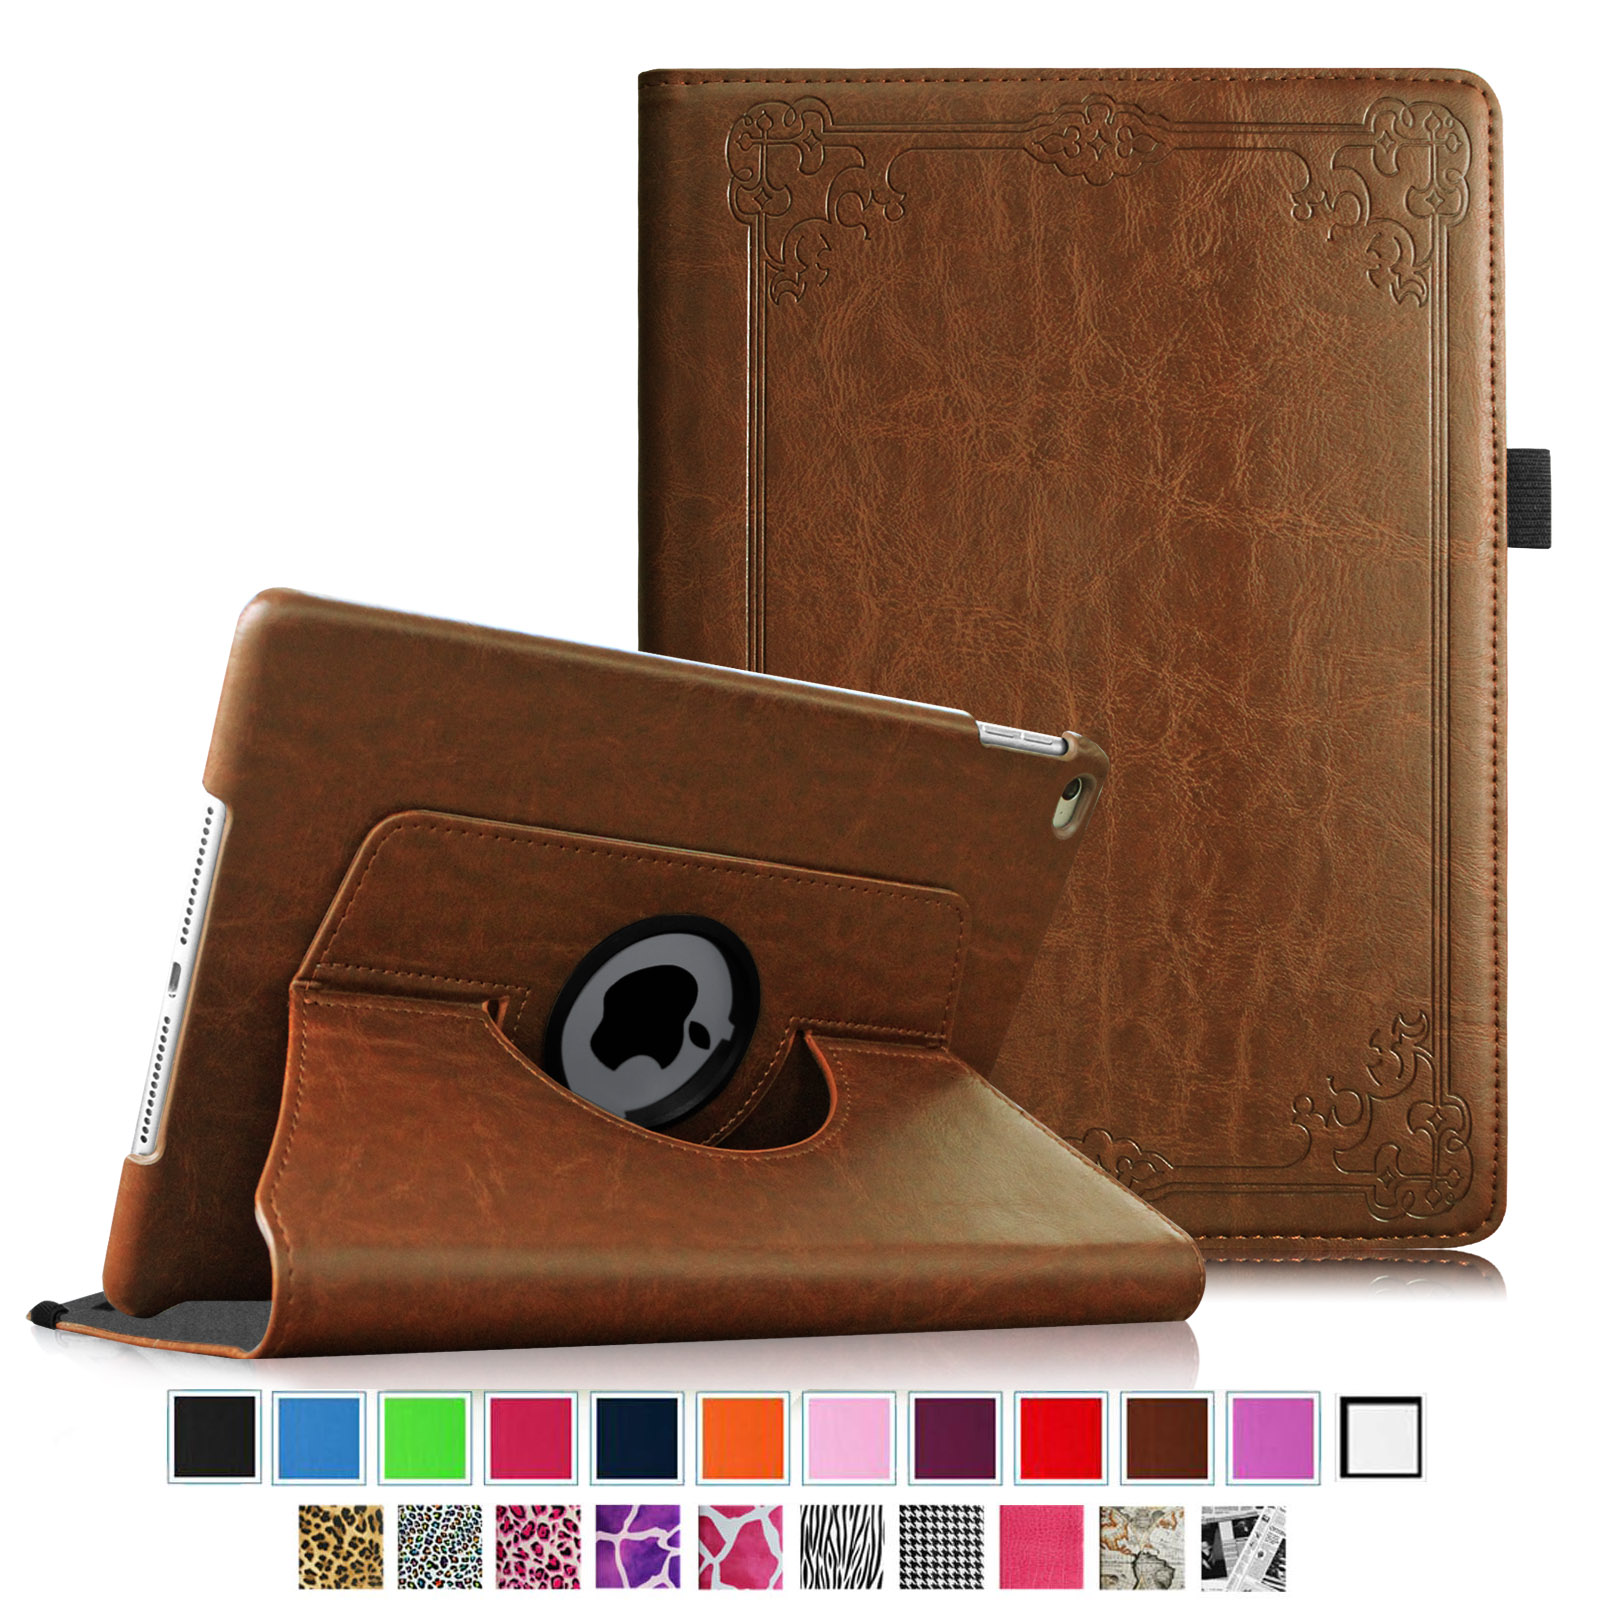 Fintie iPad Air 2 Case - 360 Degree Rotating Case w/ Auto Sleep / Wake for iPad Air 2 2014 Model, Vintage Antique Bronze